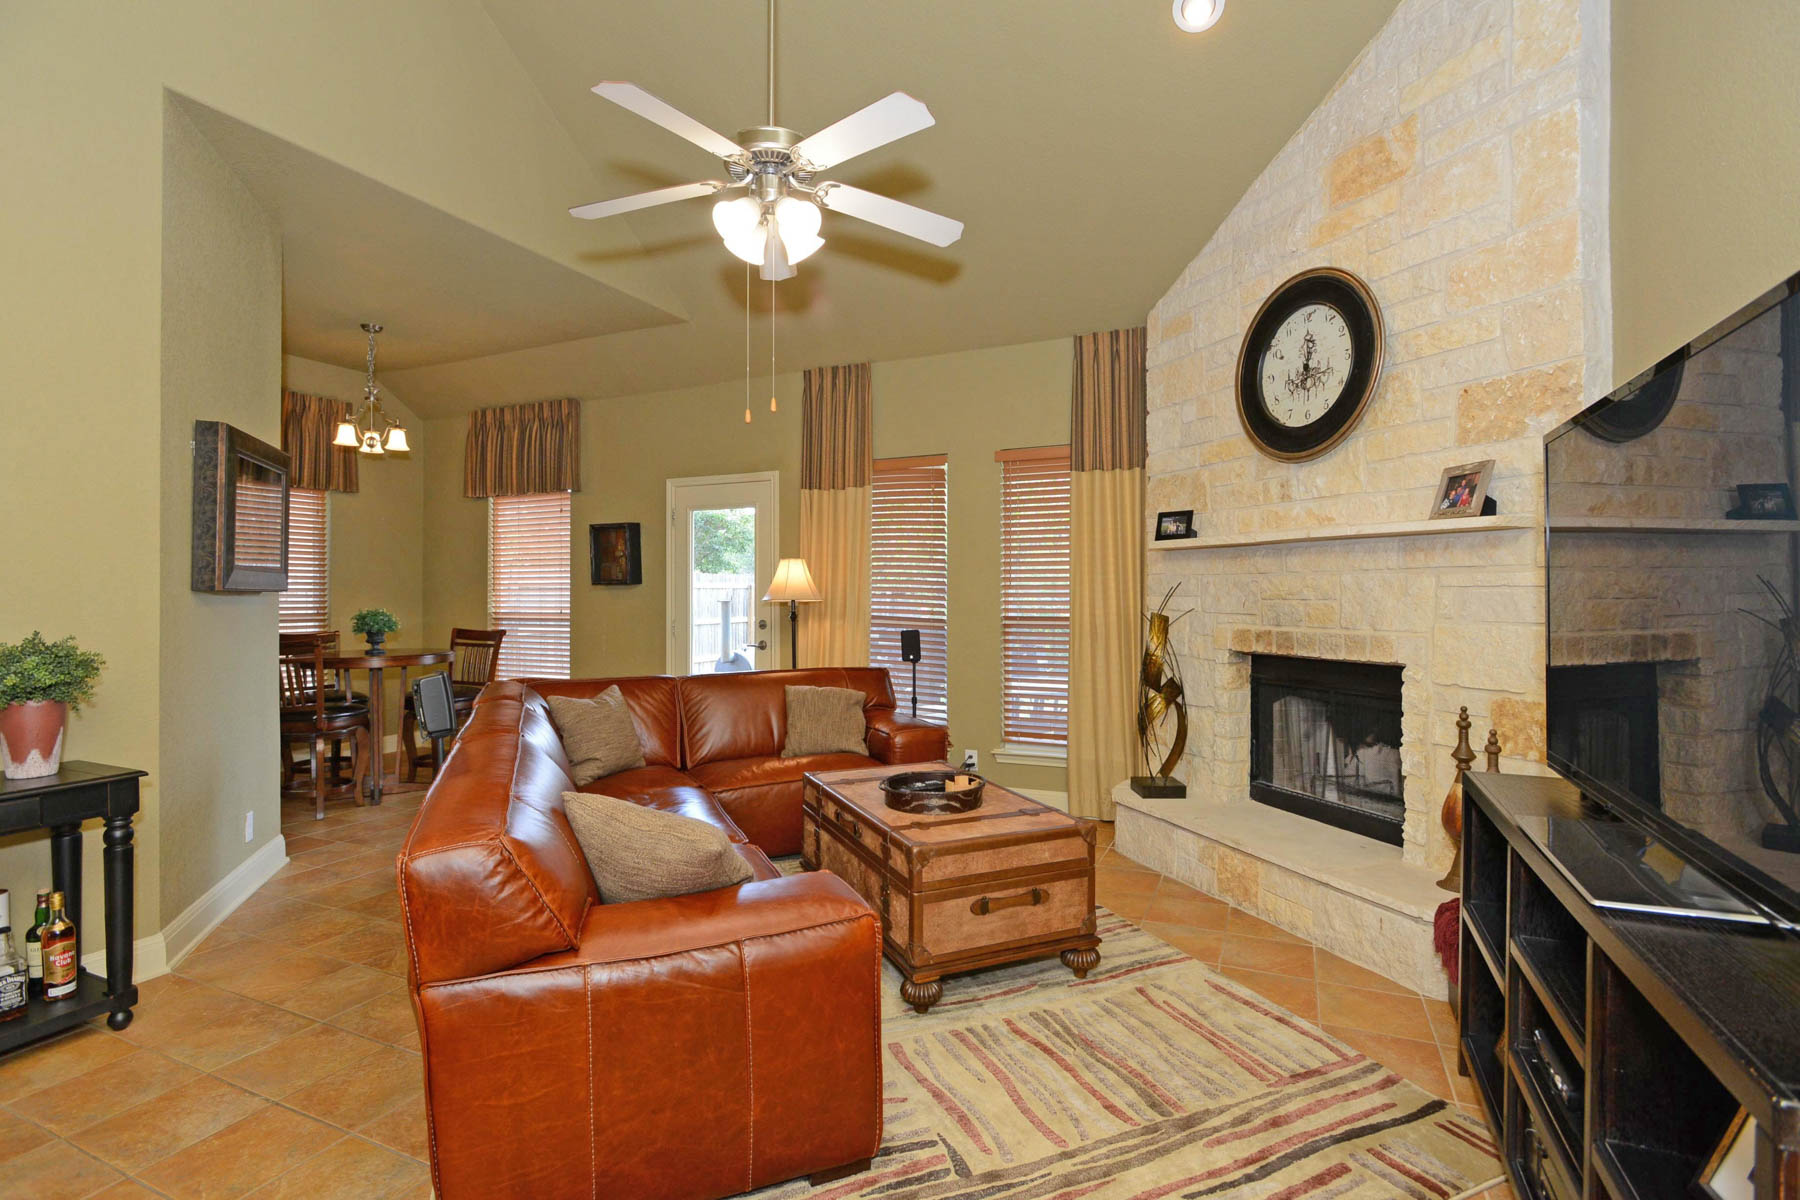 Additional photo for property listing at Gorgeous Former Model Home in Wortham Oaks 5714 Southern Oaks San Antonio, Texas 78261 United States